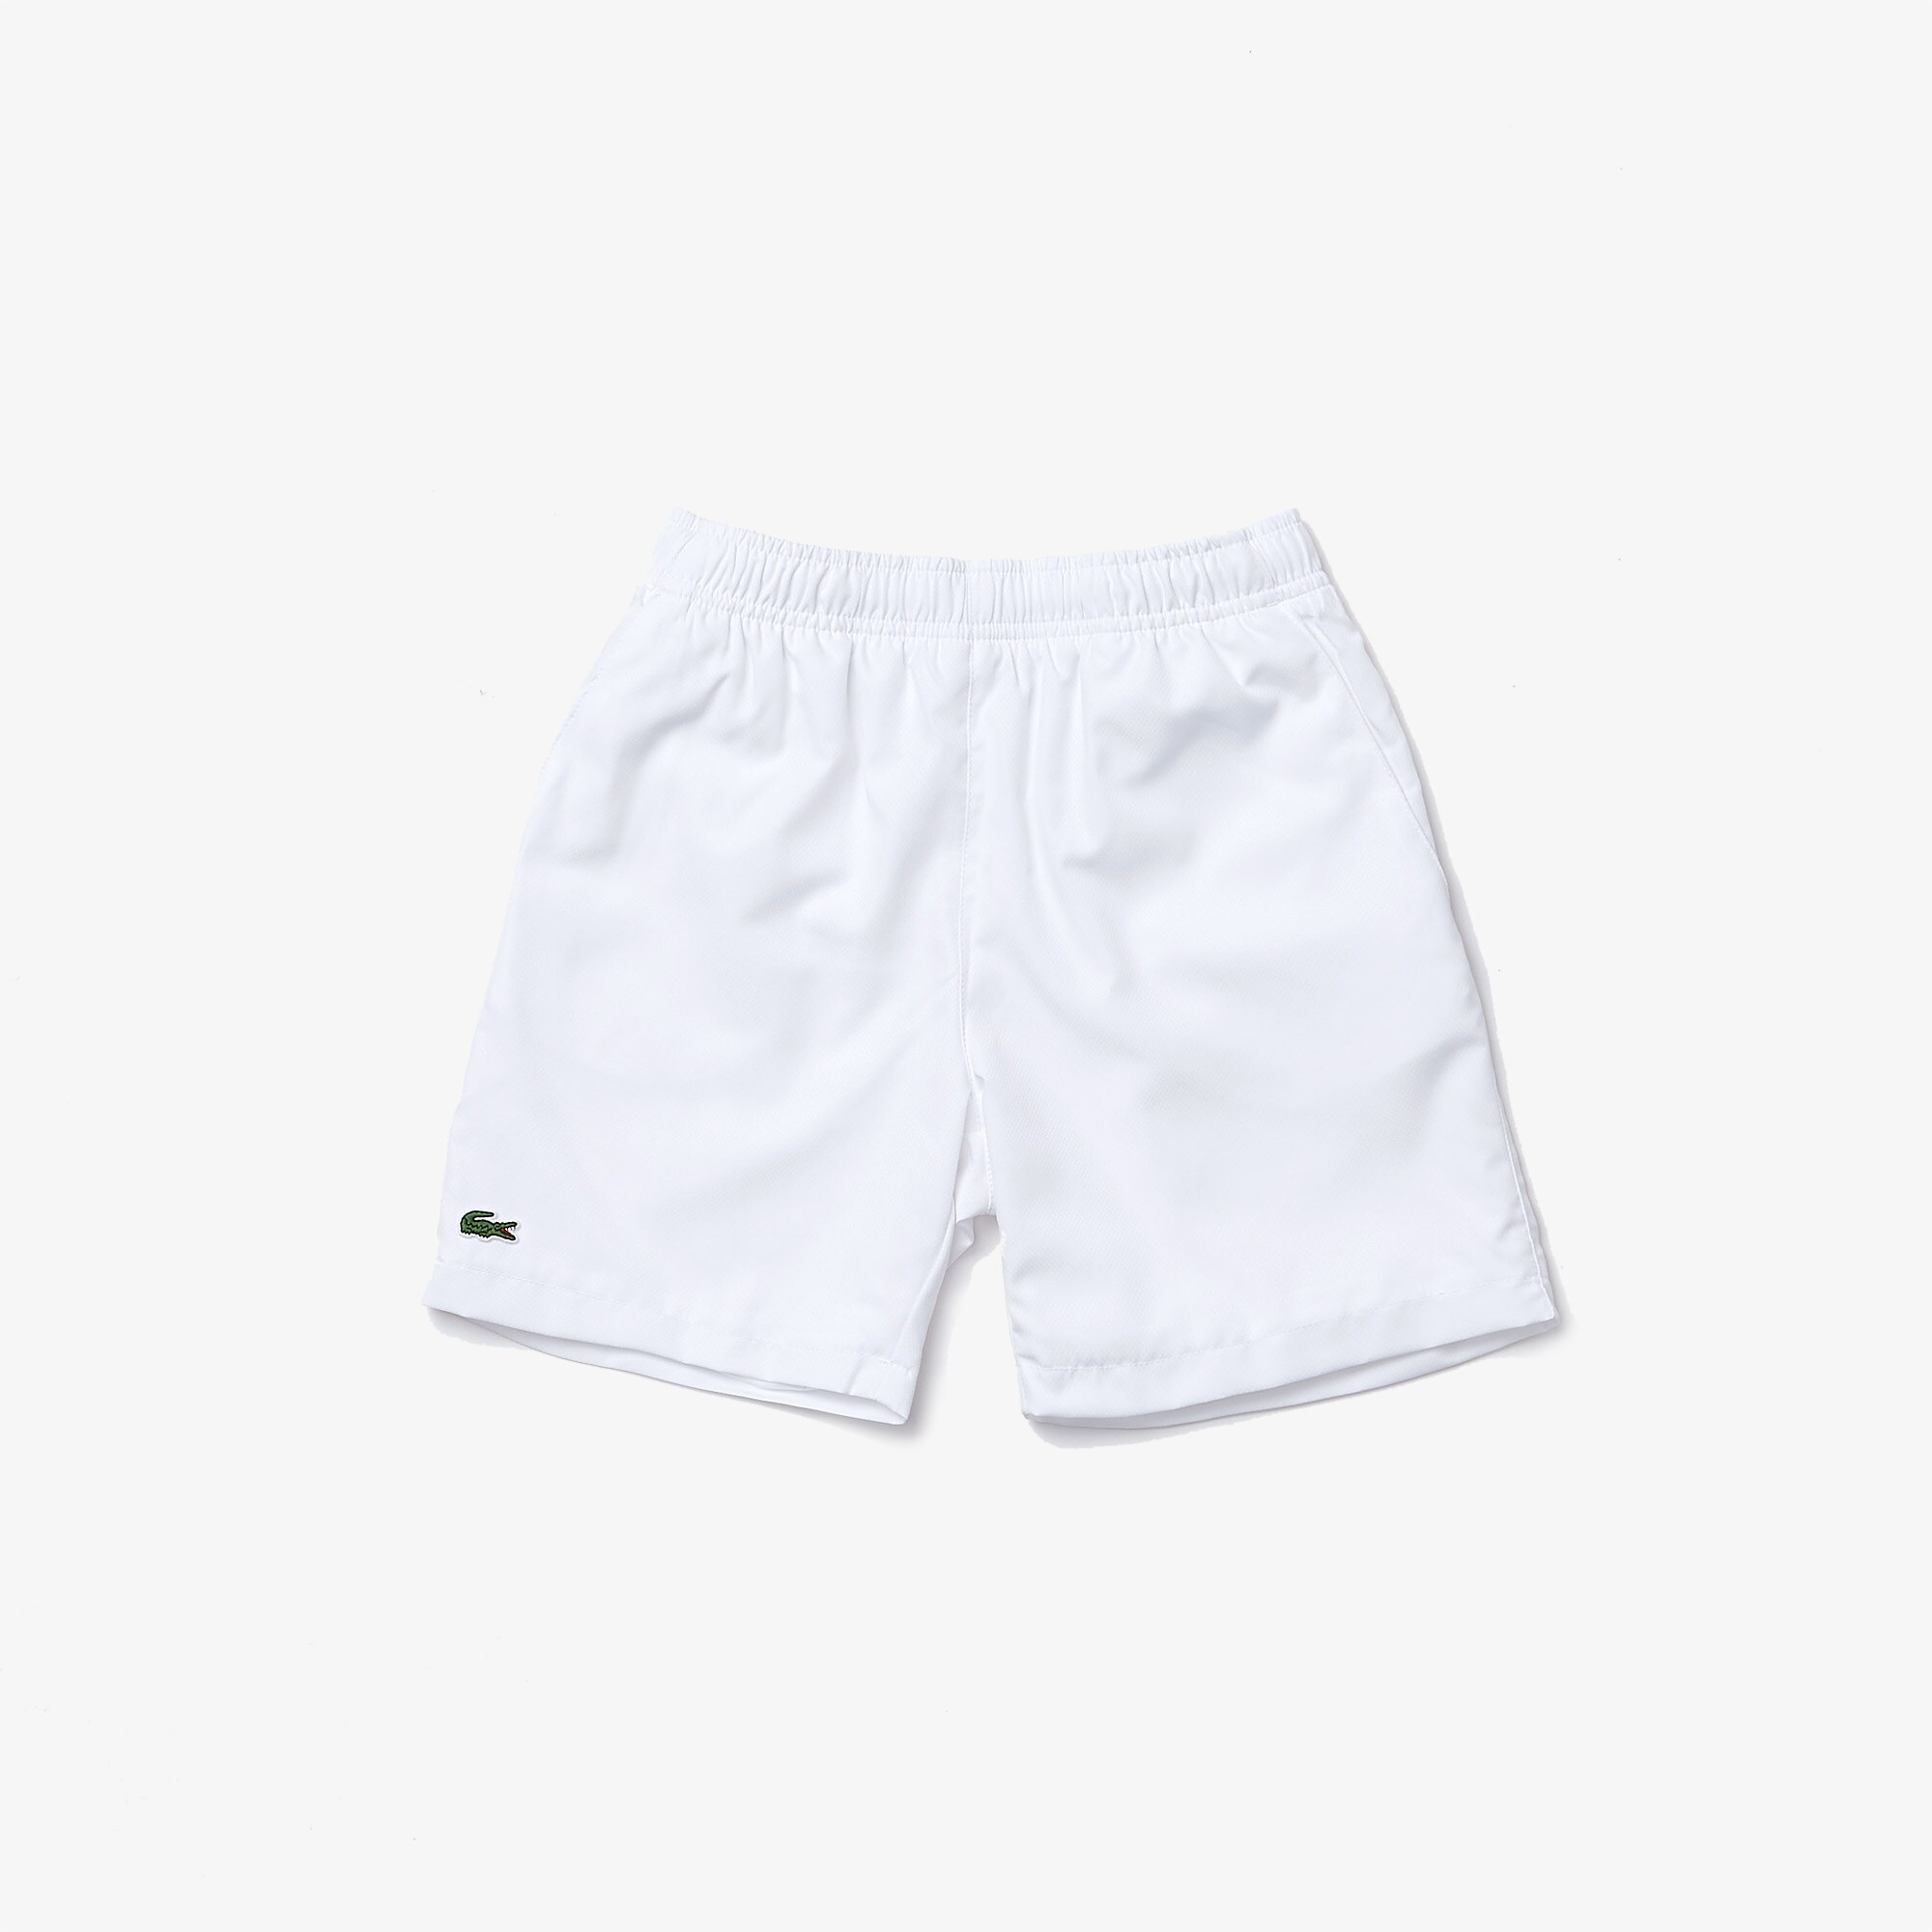 Lacoste Korte Broek Heren.Boy S Trousers Kids Fashion Lacoste